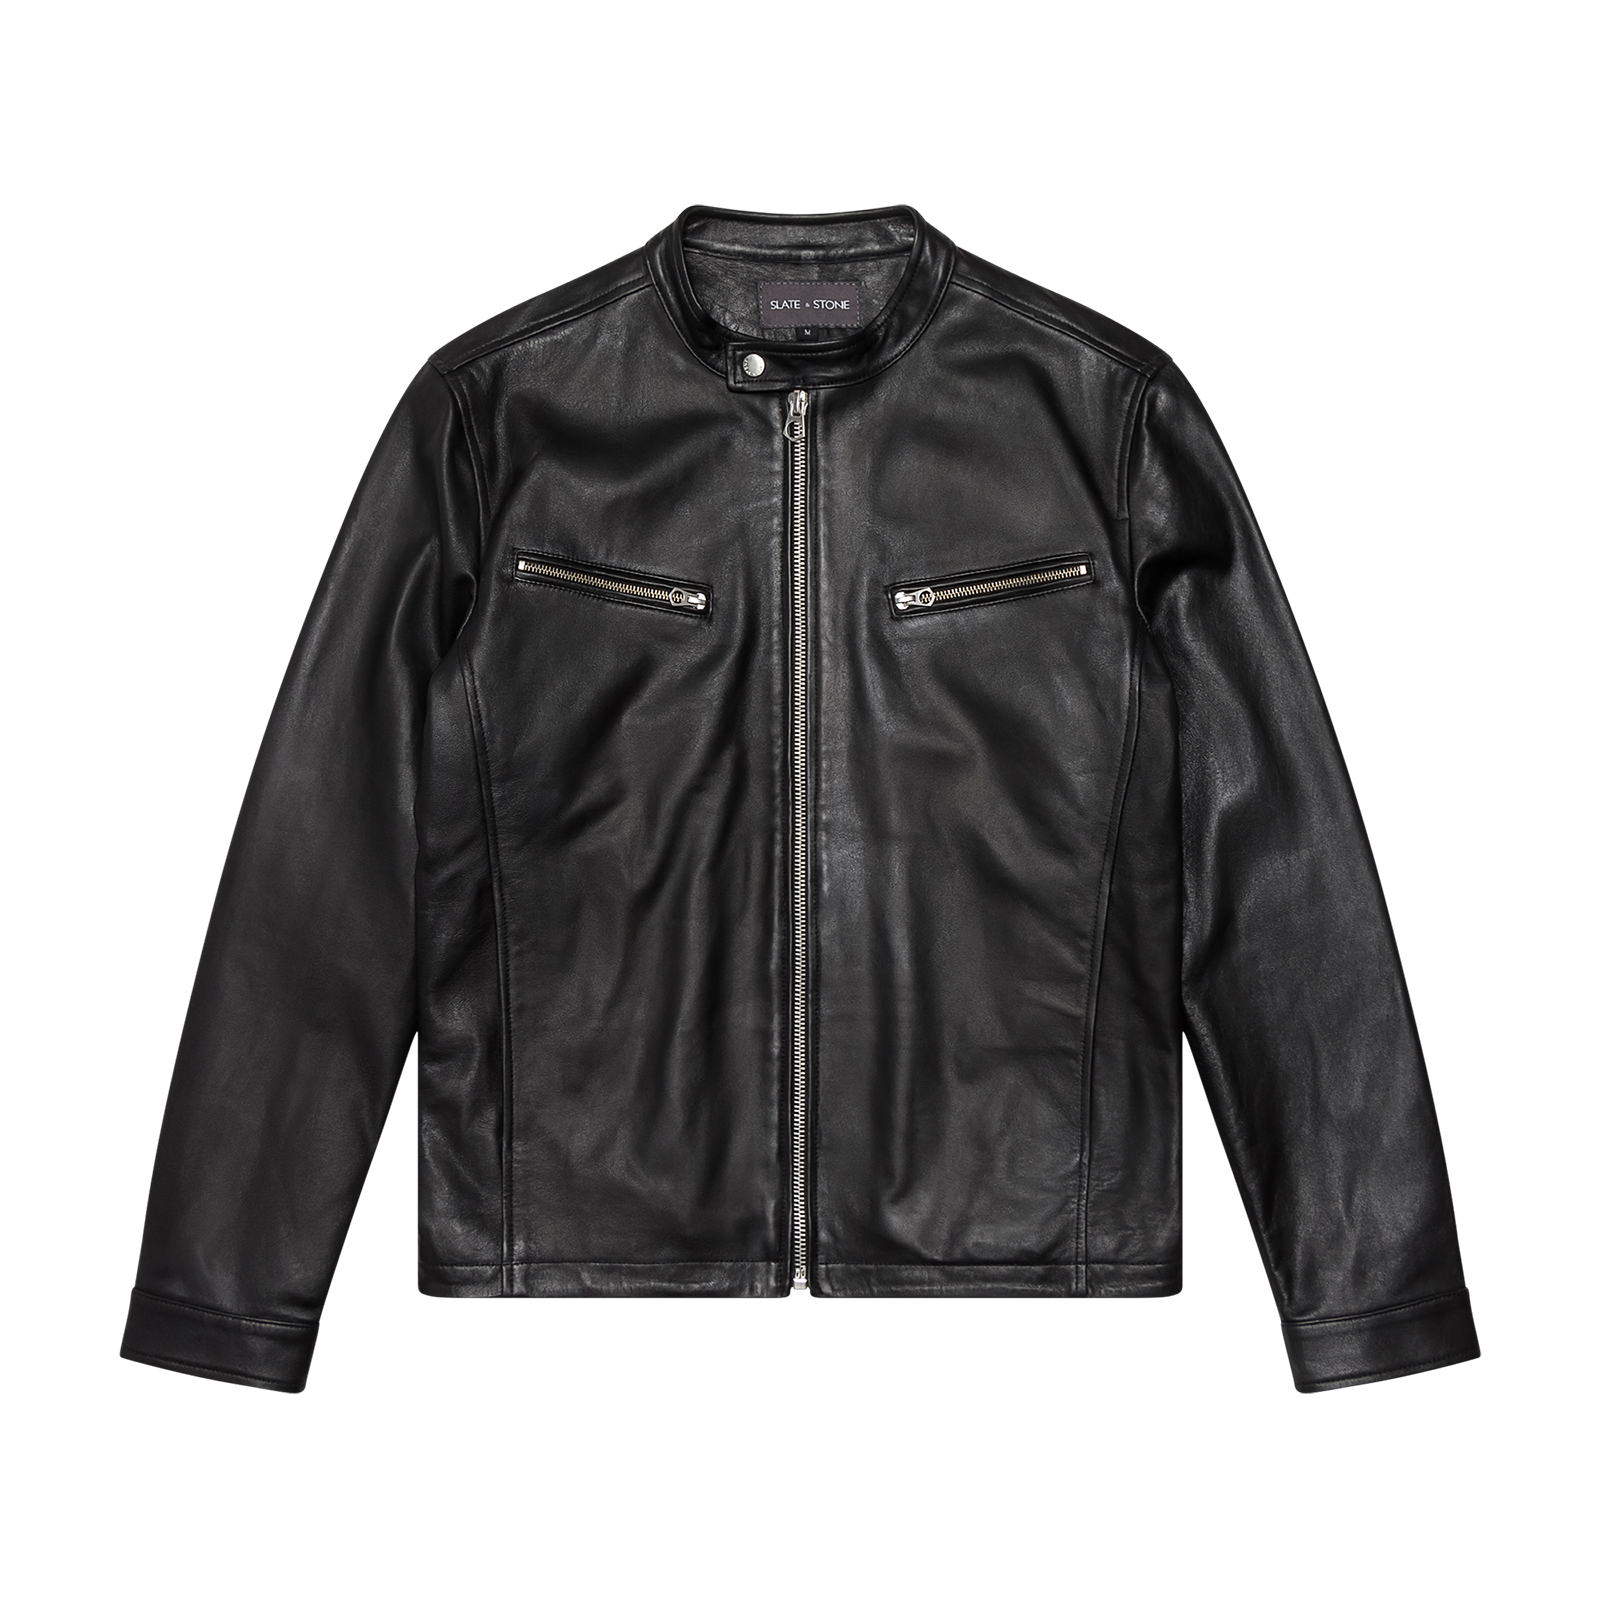 Leather jacket  product image